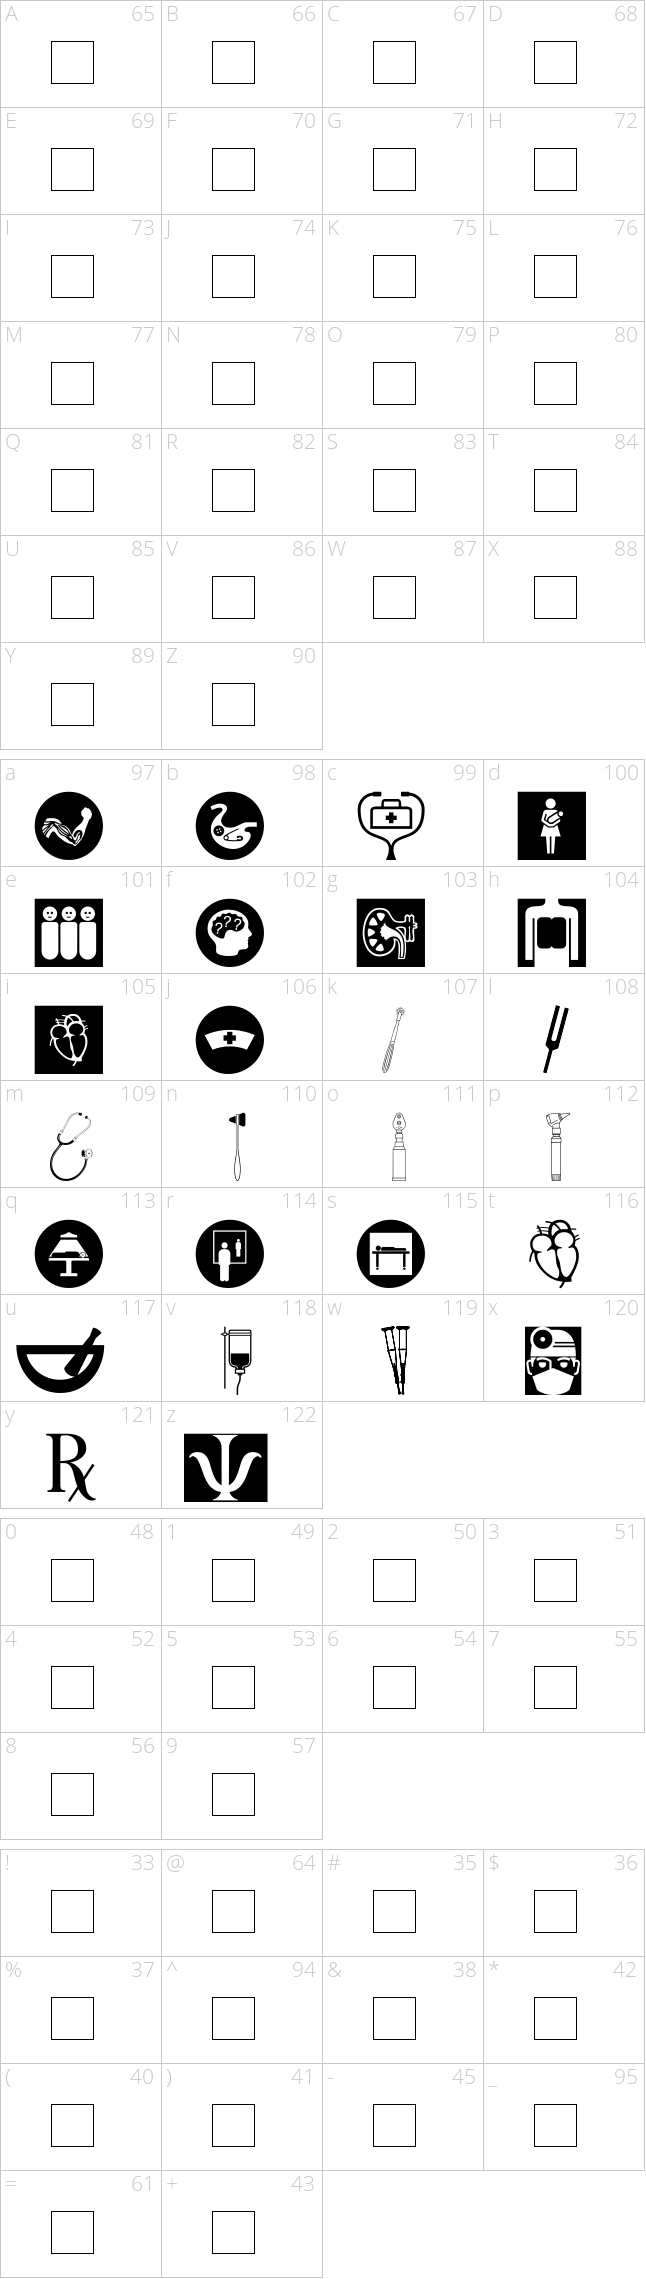 Character map for the font healthcare symbols dailyfont character map for the font healthcare symbols biocorpaavc